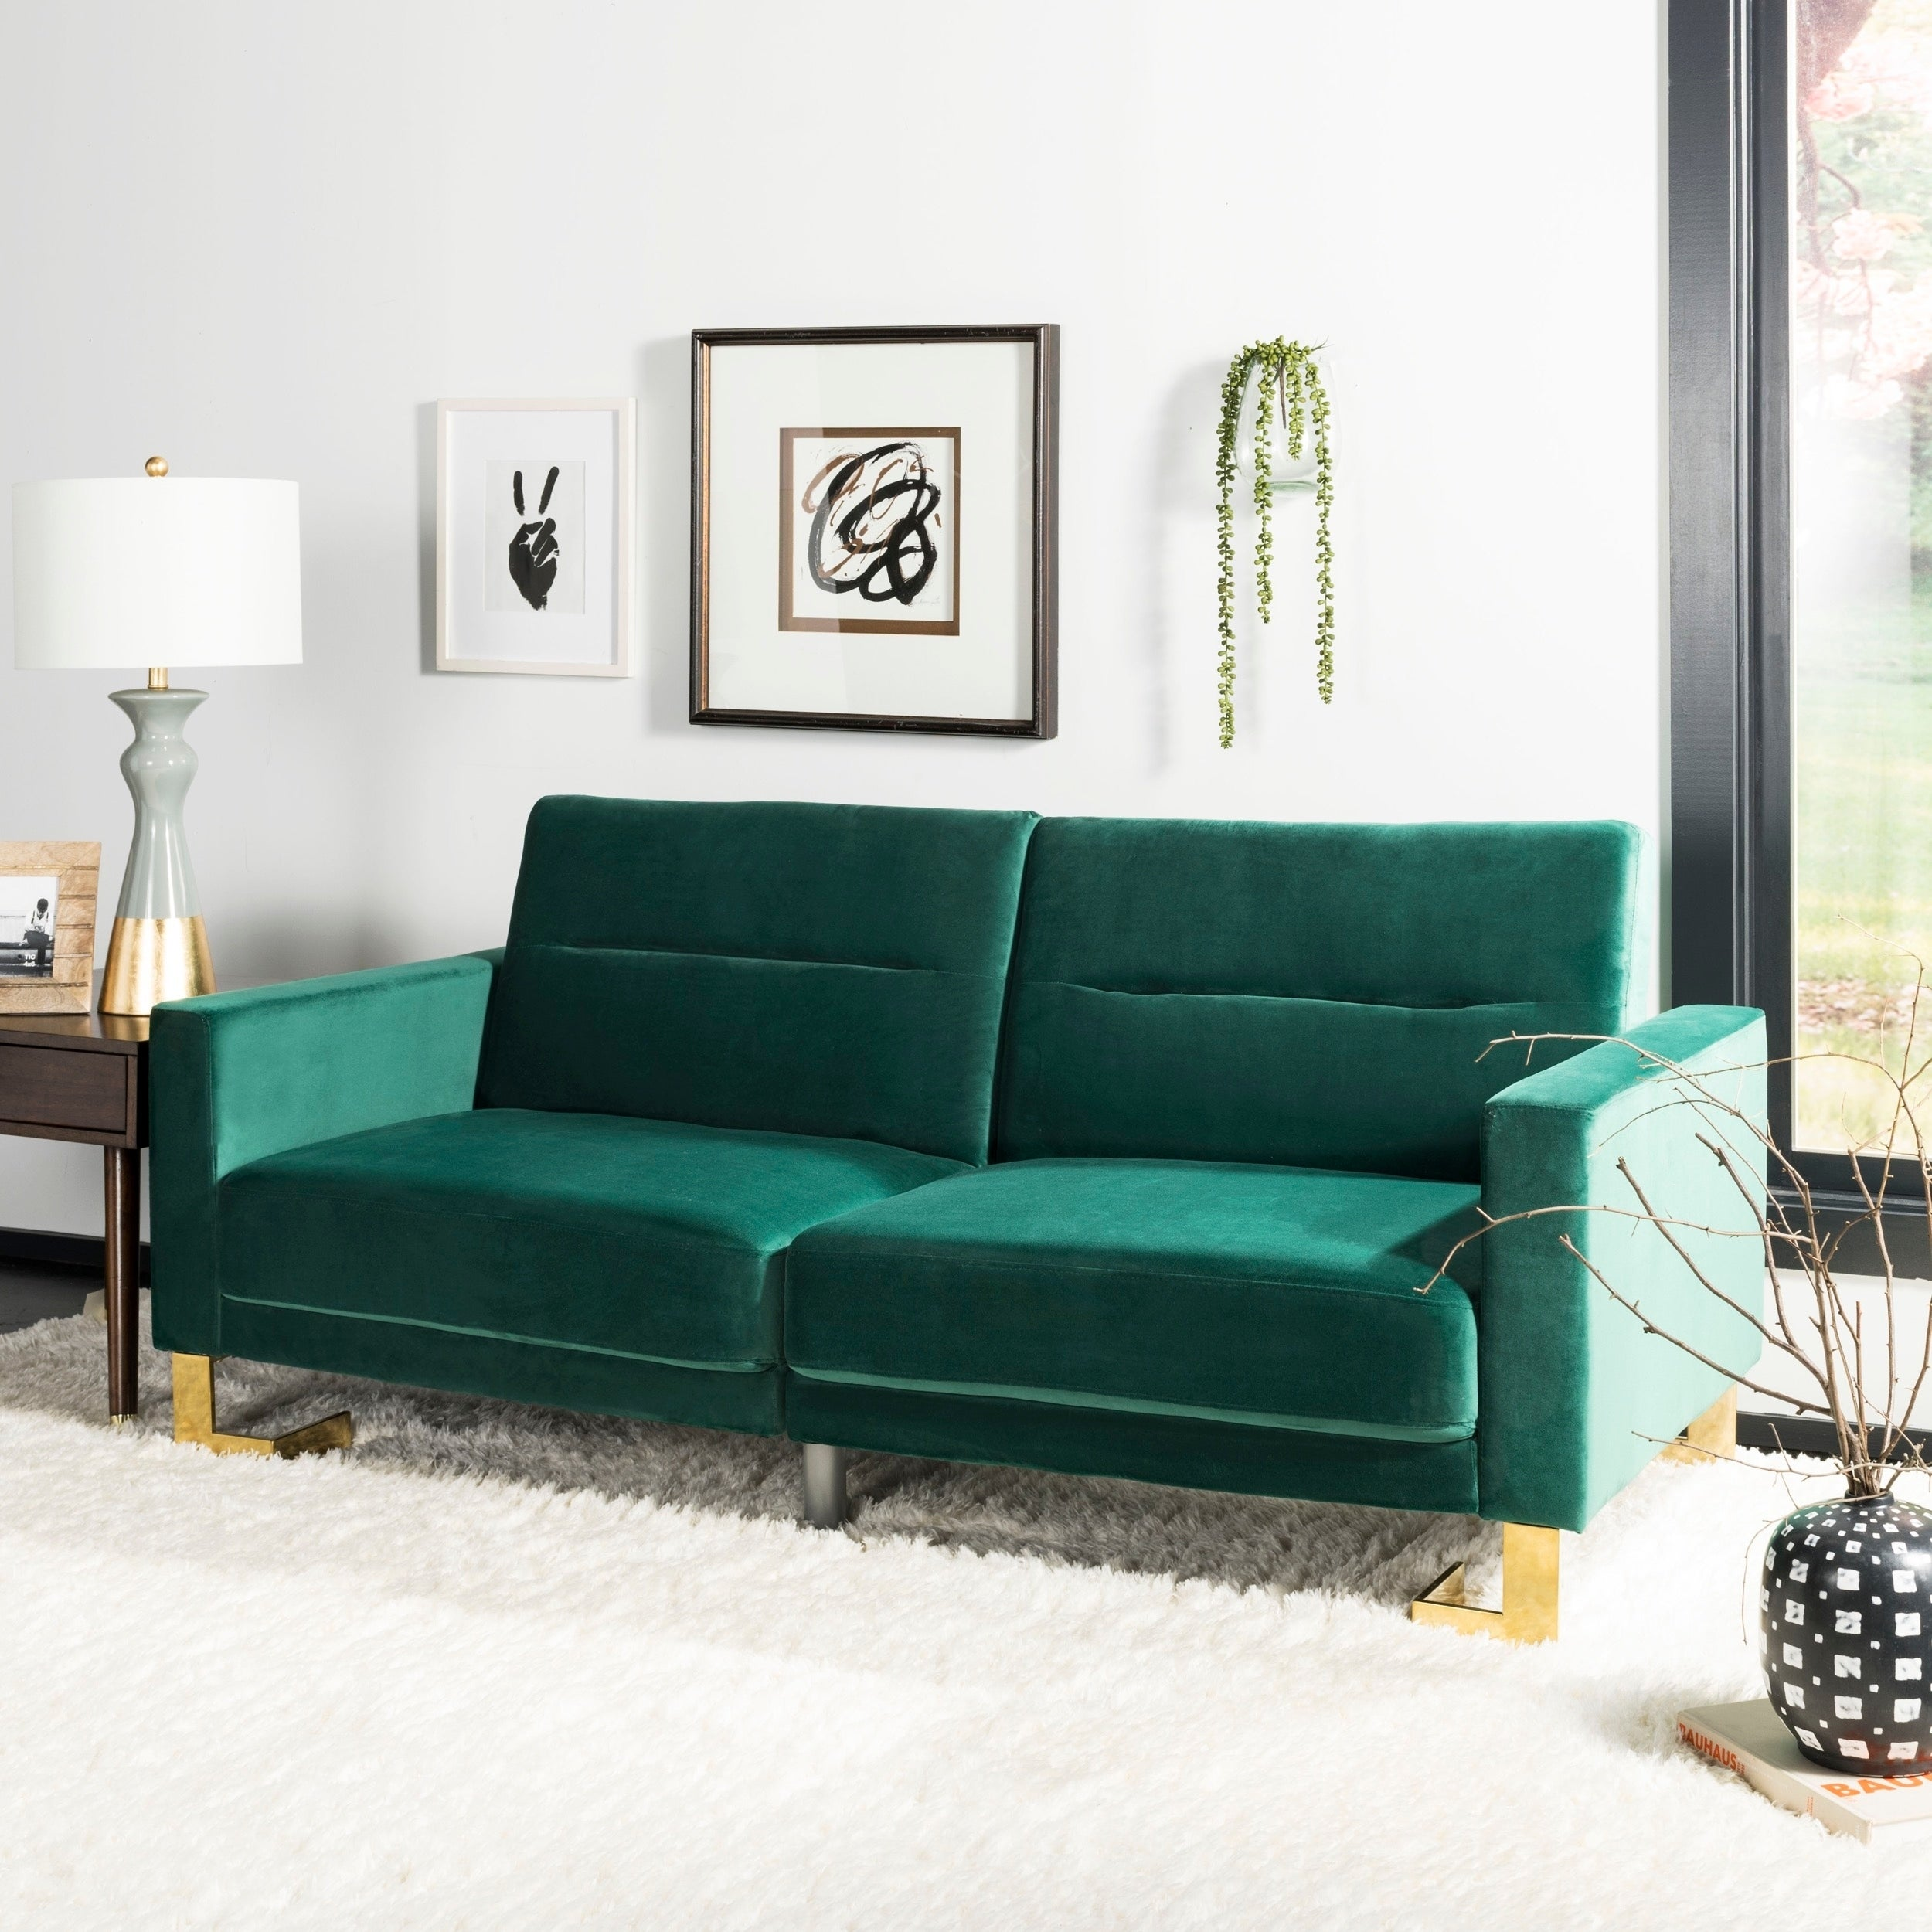 Safavieh Tribeca Emerald Brass Foldable Futon Bed   77.1u0027 X 33.1u0027 X 36.6u0027